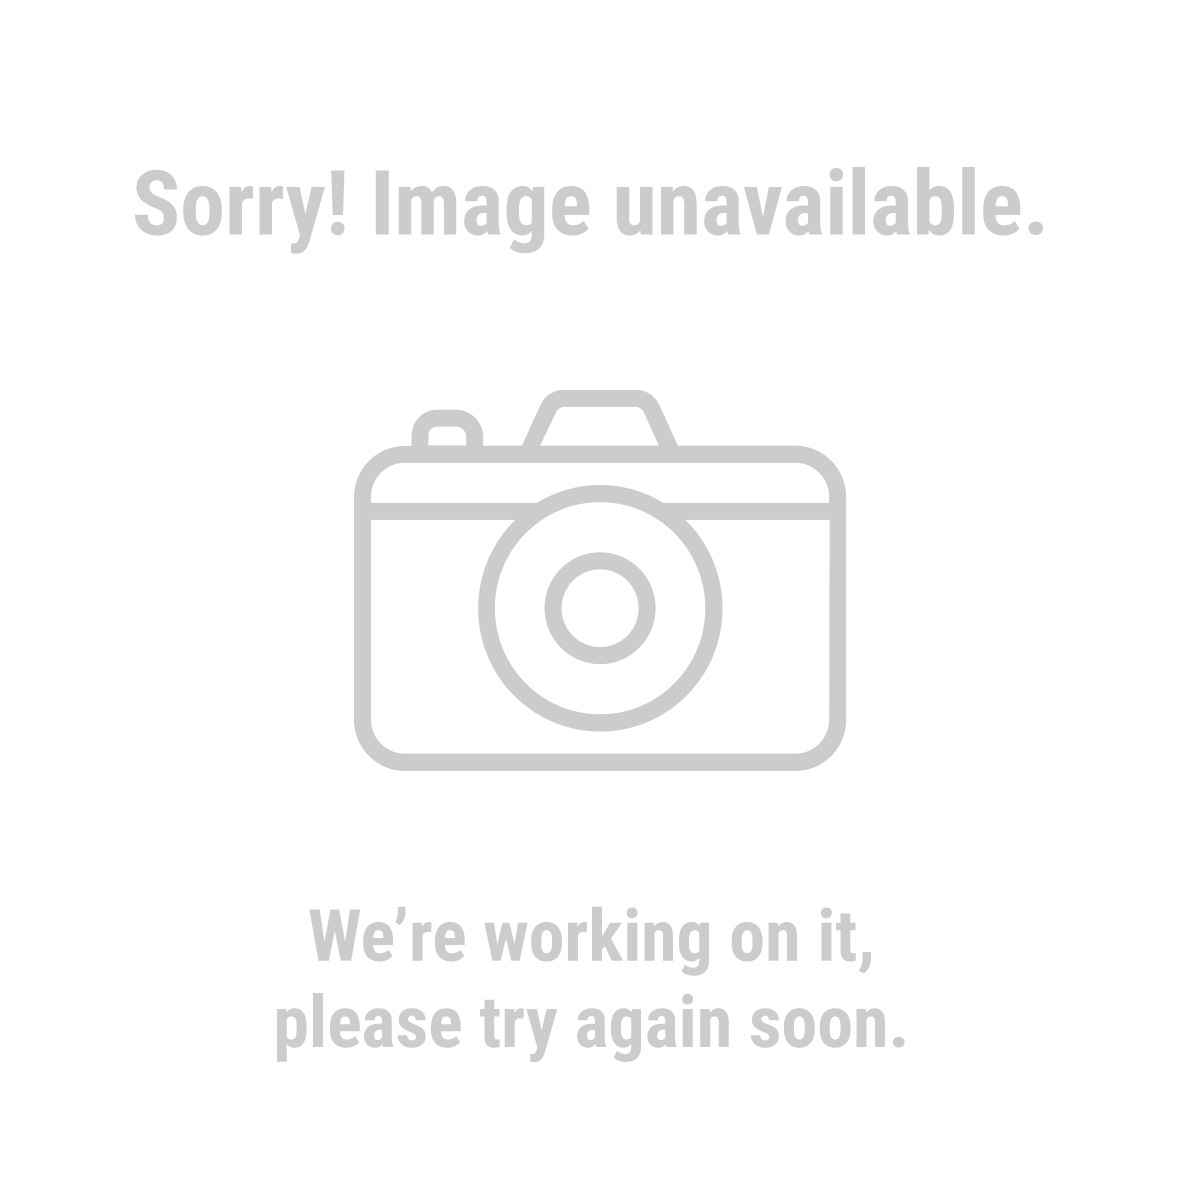 Pittsburgh 39384 40 Piece Metric Carbon Steel Tap and Die Set